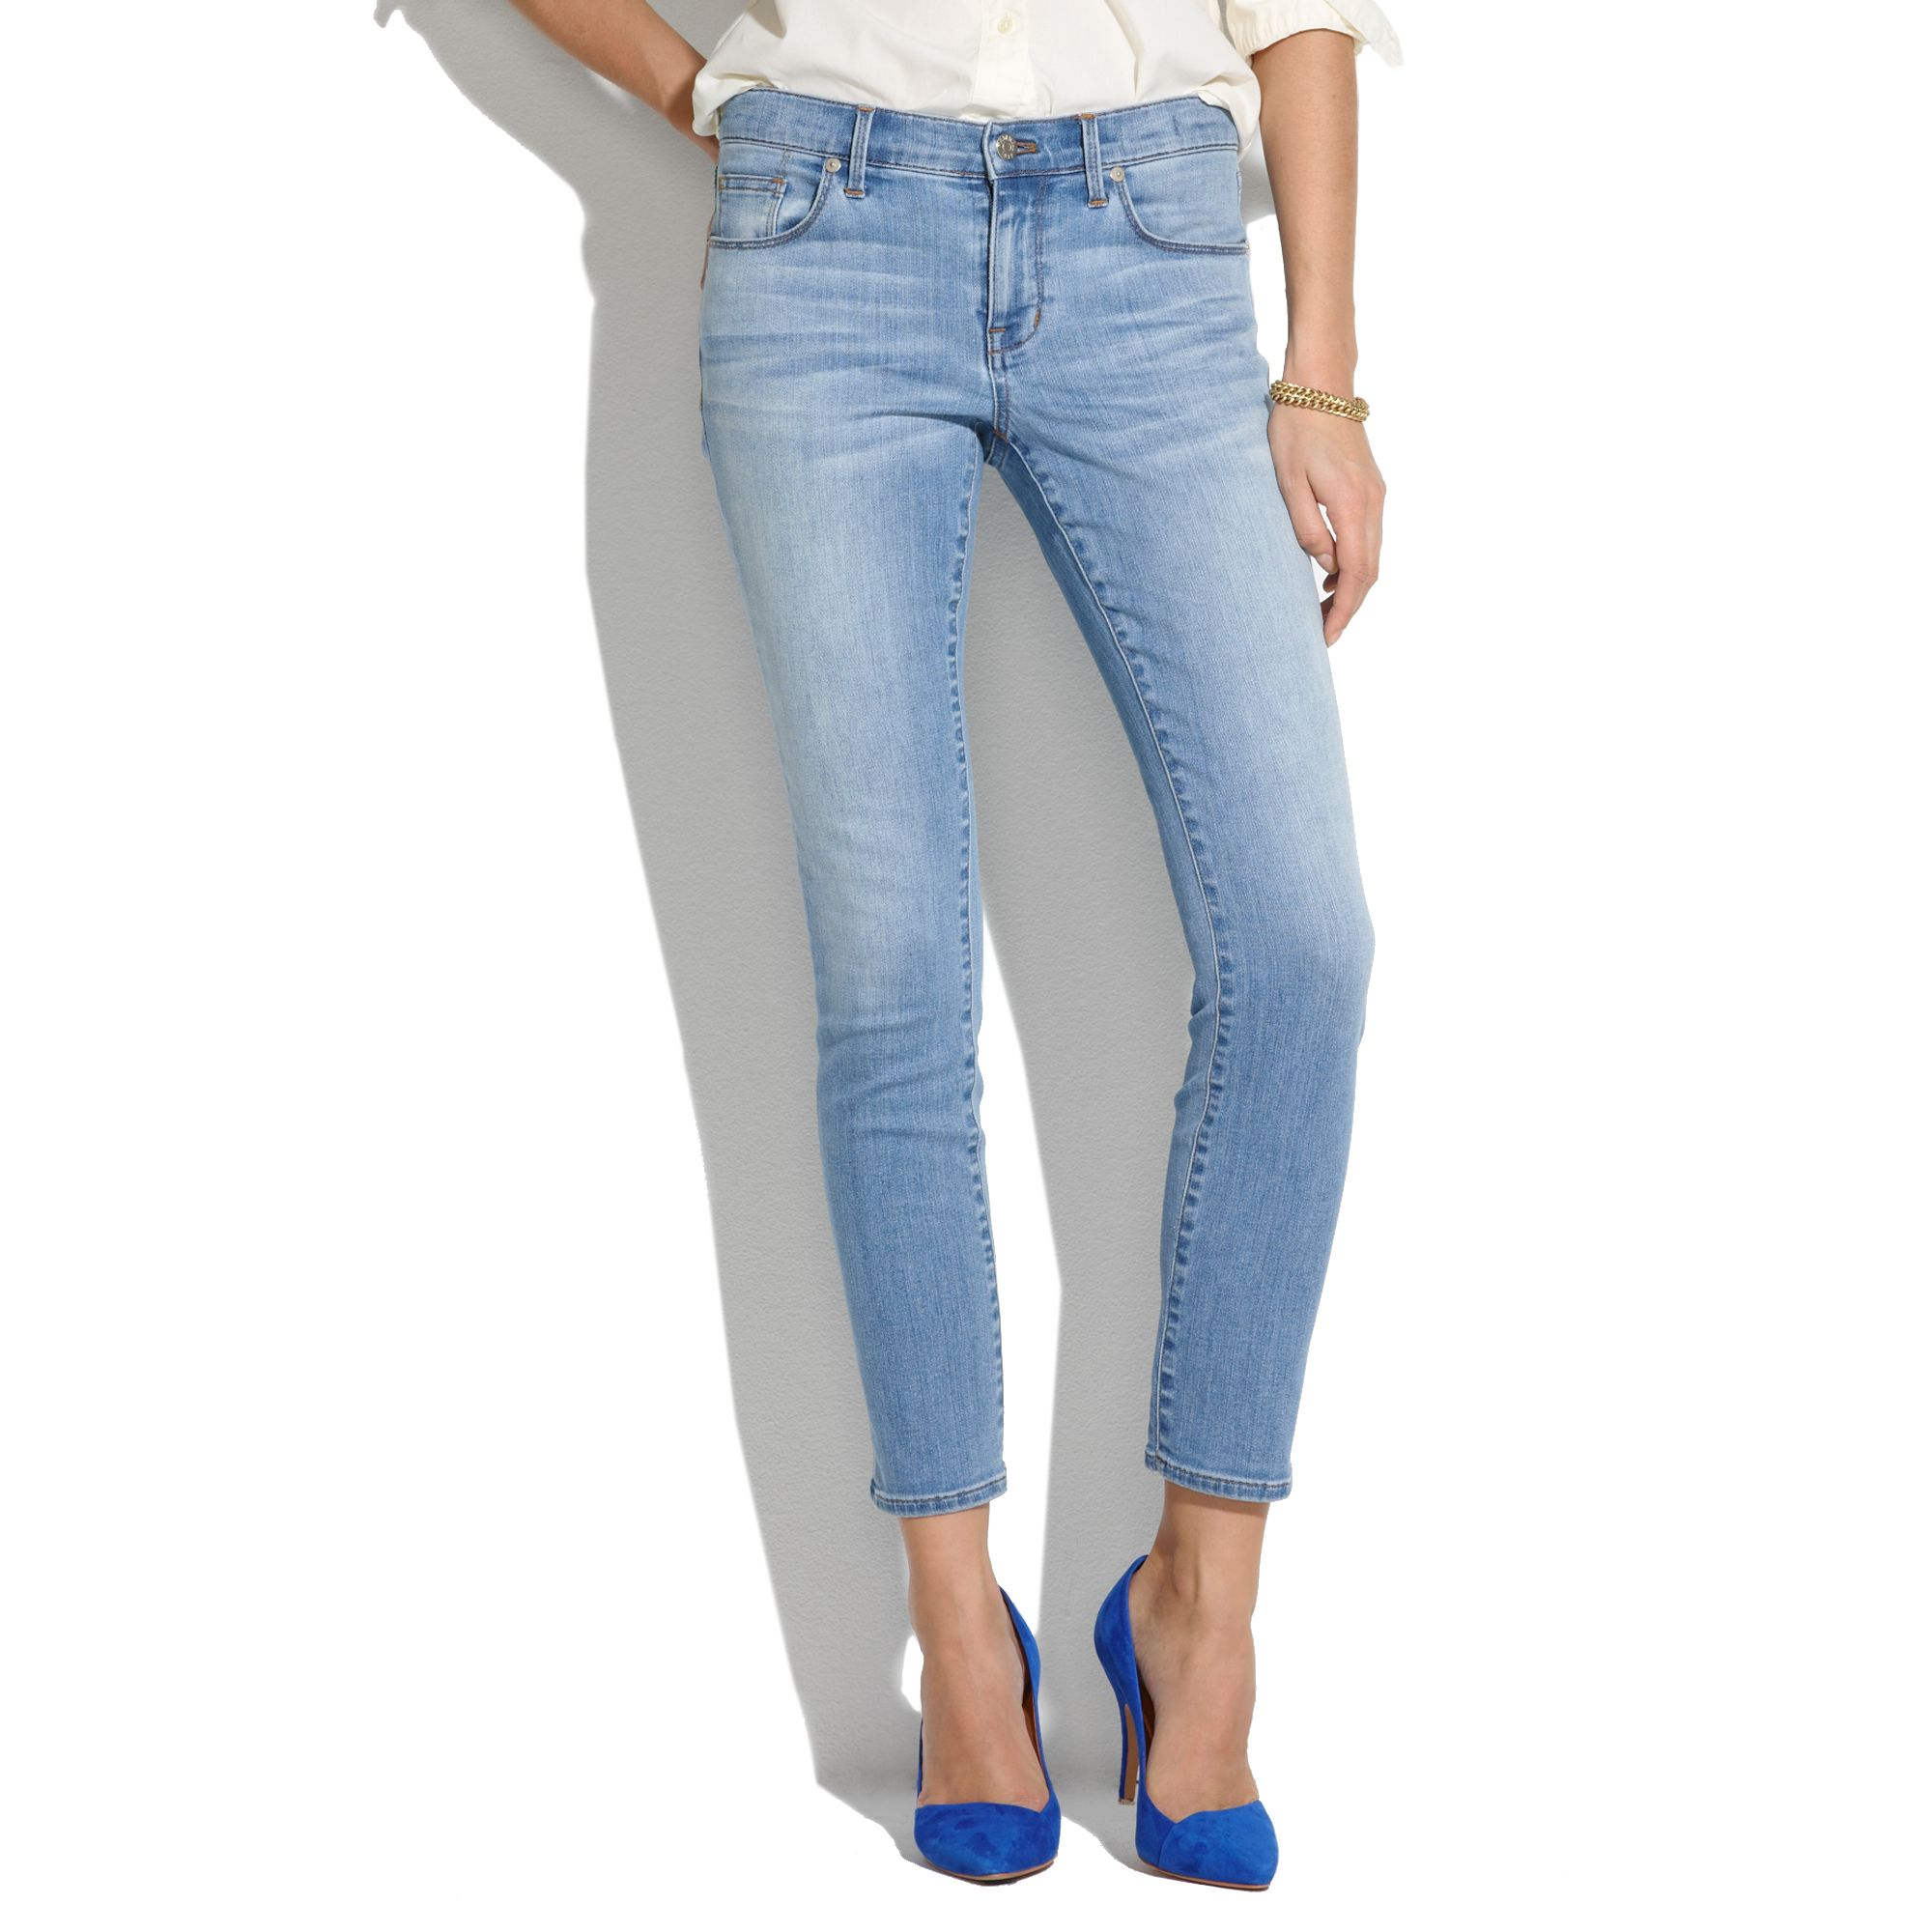 Shop hudson jeans on sale at muktadirsdiary.ml Free Shipping and Free Returns for Loyallists or Any Order Over $!